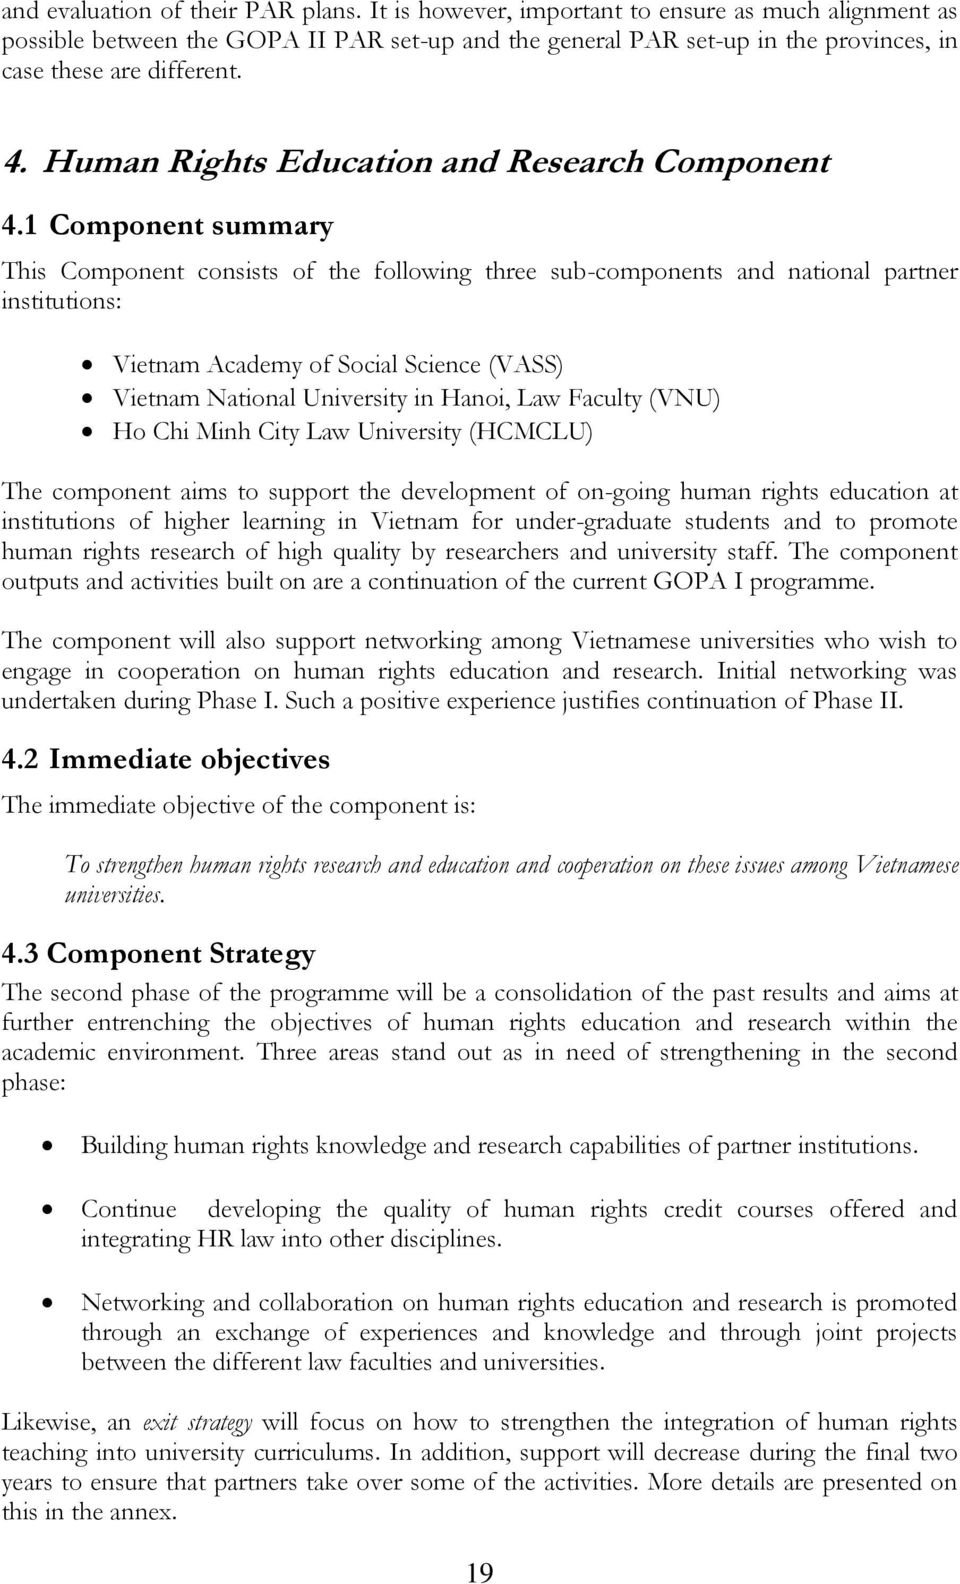 Human Rights Education and Research Component 4.